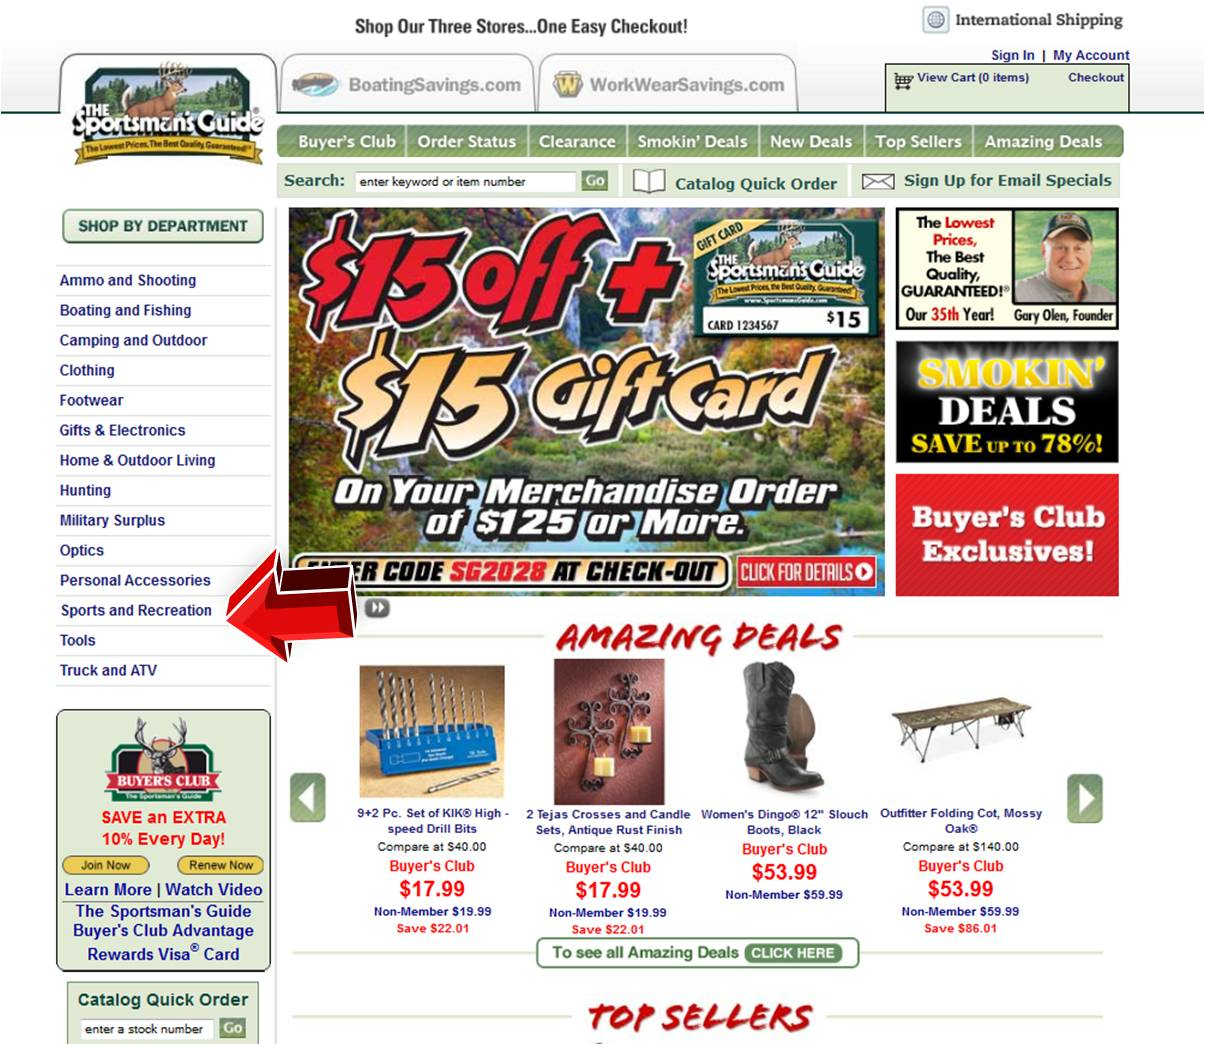 Sportsmans Guide Sports and Recreation | Coupon Code